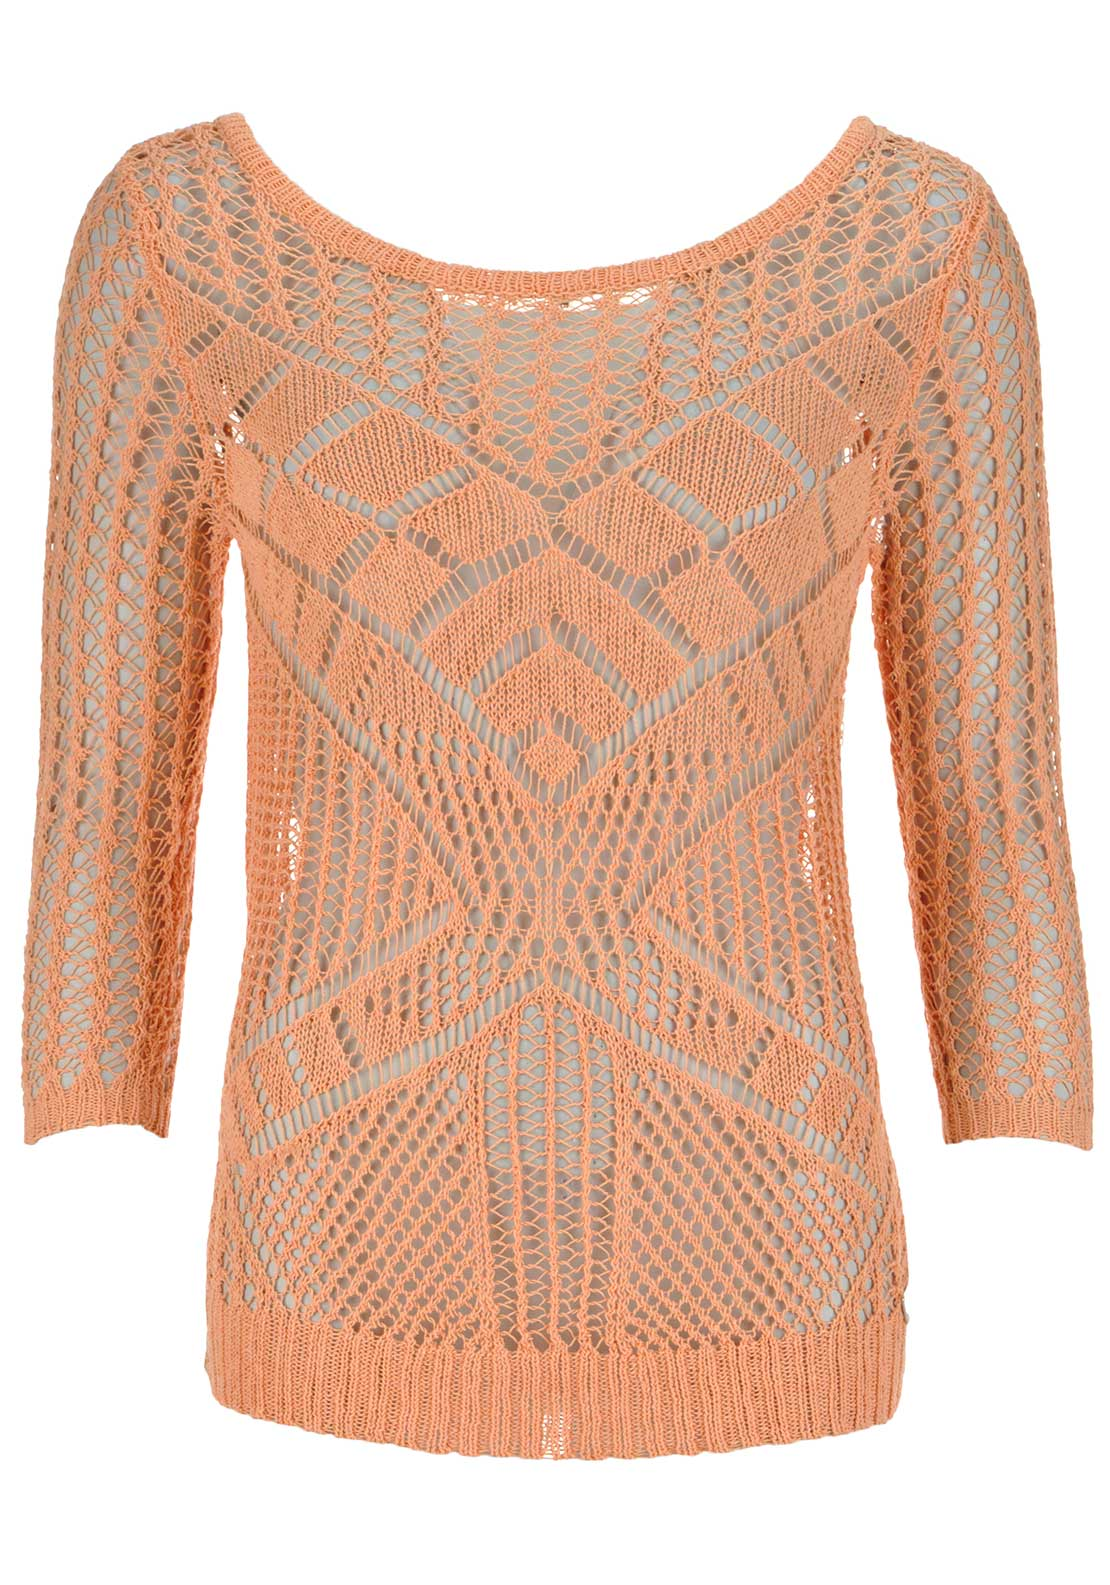 Guess Womens Crochet Knitted Cropped Sleeve Jumper, Peach